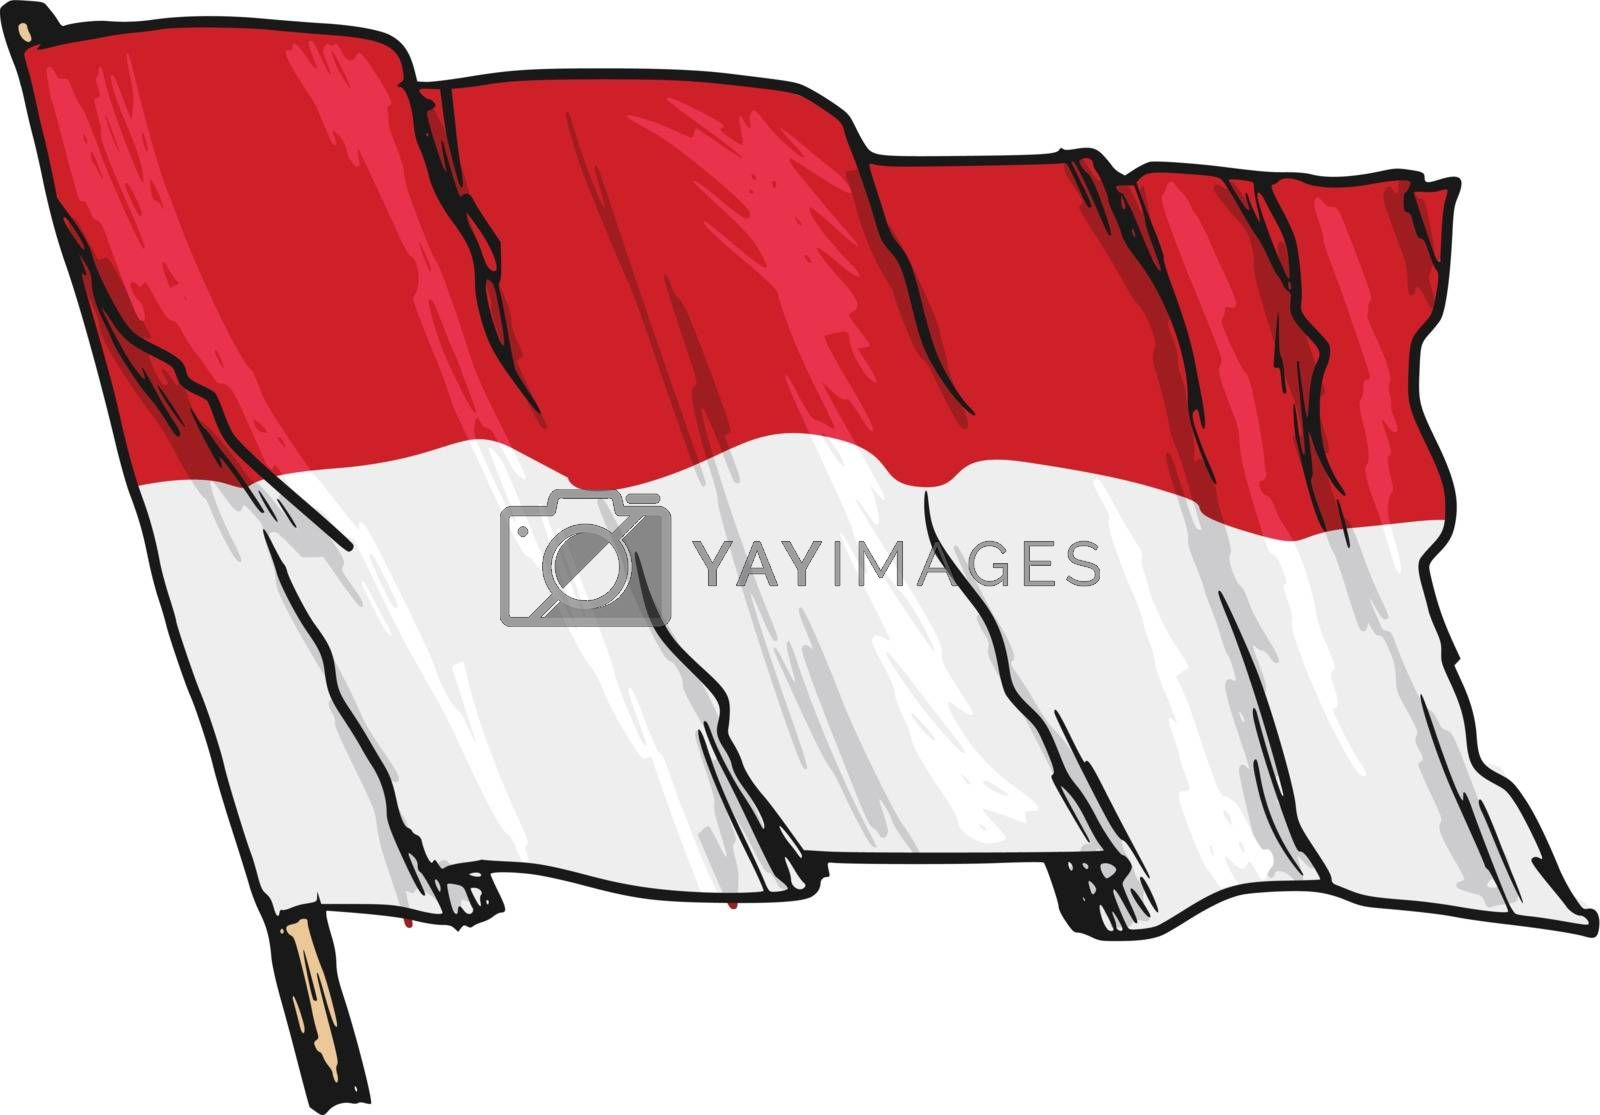 Royalty free image of flag of Indonesia by Perysty